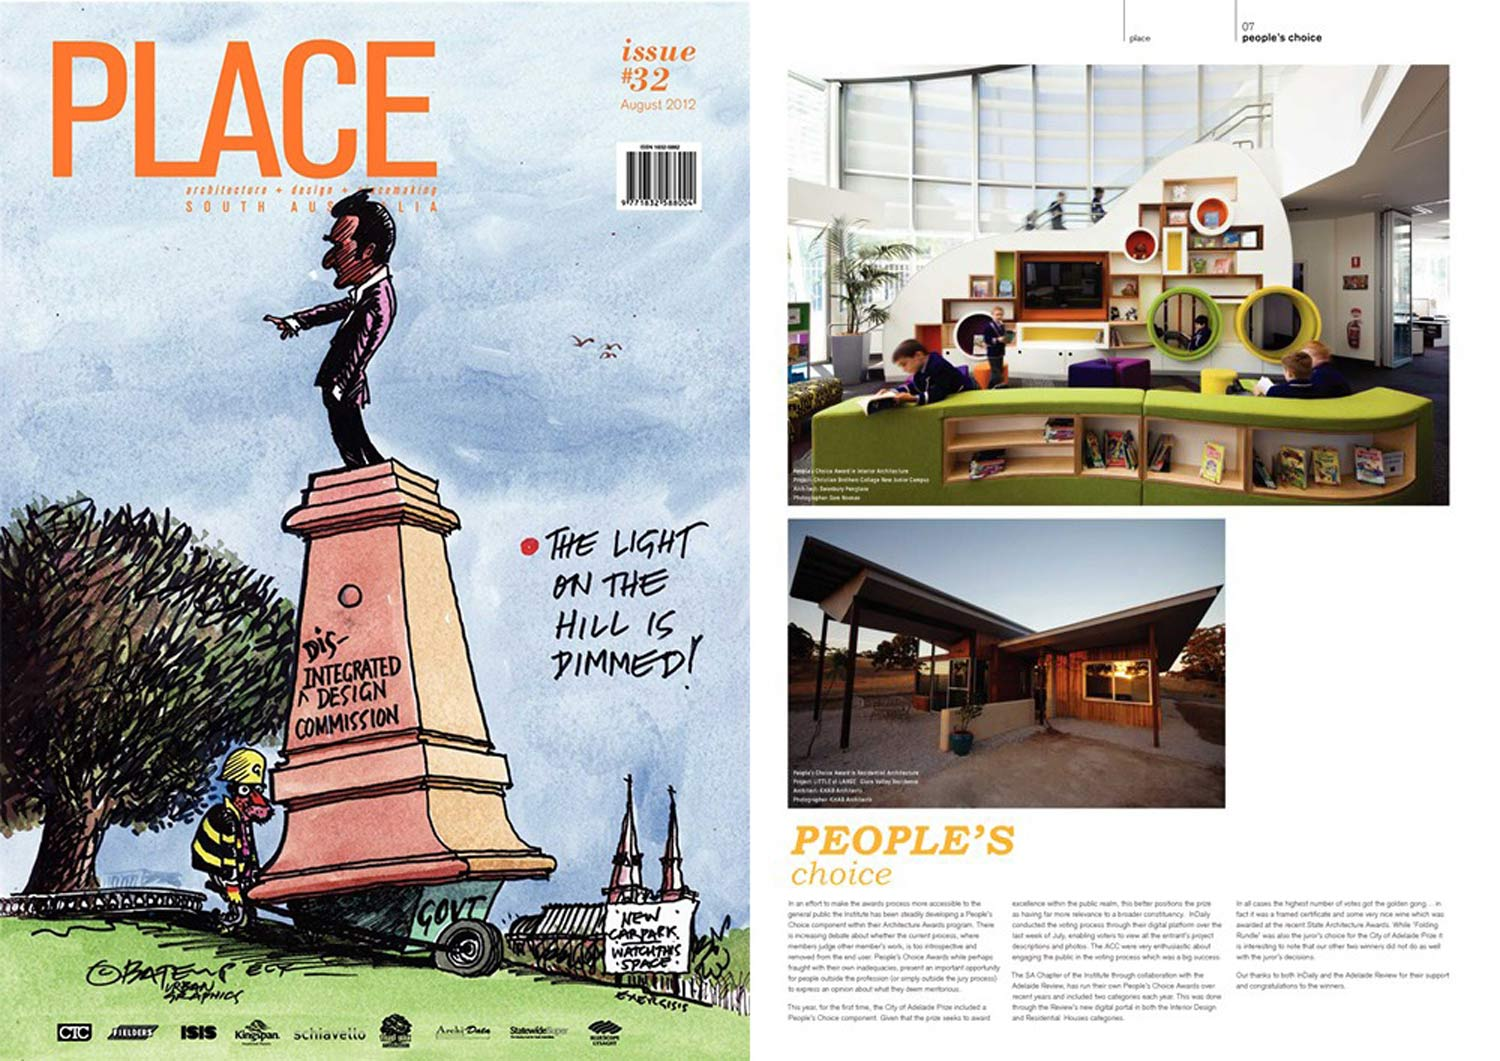 Place Magazine    #khabarchitects #paintcolour #adelaidehouse #awardwinningarchitecture  #architect #architecturelovers #architect #architecturephotography #architectureporn #architects #architectural #architecturelover #architecturestudent #architecturalphotography #architecturedesign #architectanddesign #architecturephoto #architecturaldesign #architectureschool #architecturaldigest #architecturesketch #architecturemodel #architectura #Architecte #architecturelife #architecturegram #architectureandpeople #architecturelove #architecturedaily #buildings #adlarchigram #courtyardhouse @adelaide_photographer @custombuiltprojects @boraltimbers @revolutionroofing #pressedtin #naturaltimber #dulux #duluxcolour #adelaide #khabarchitects #paintcolour #adelaidehouse #awardwinningarchitecture #adelaidehills #hills adelaide hills